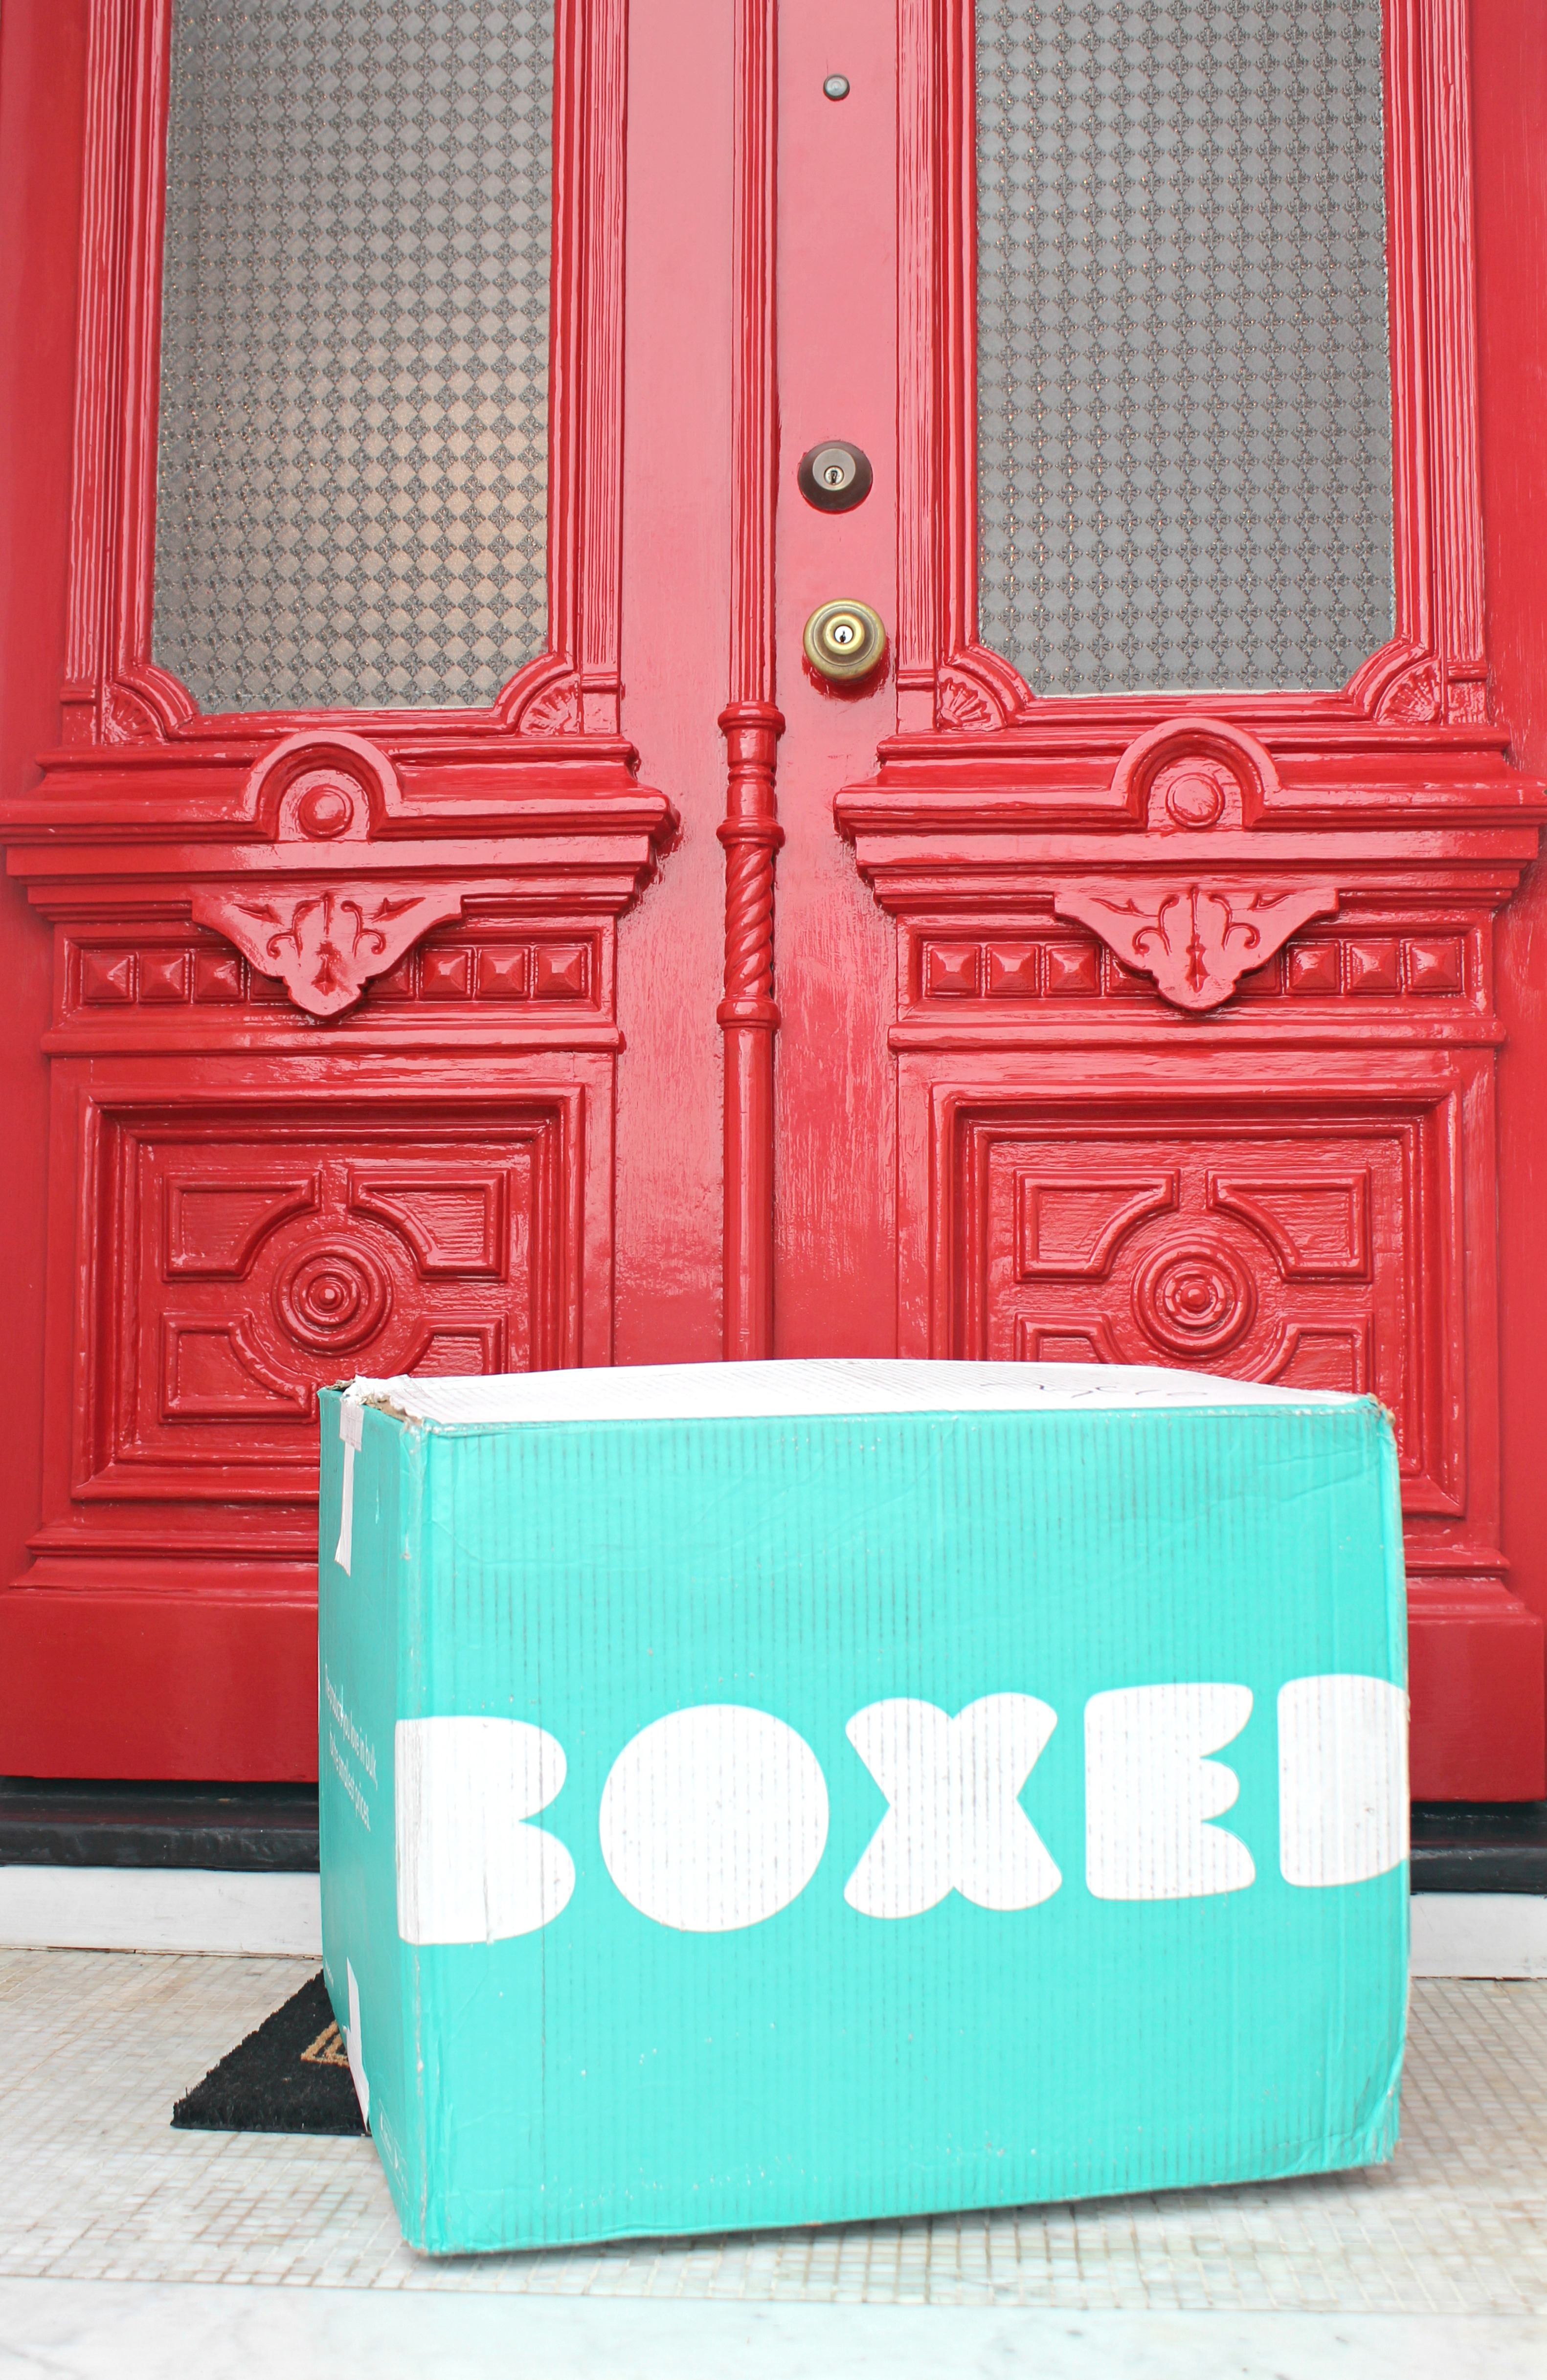 Boxed.com Delivery